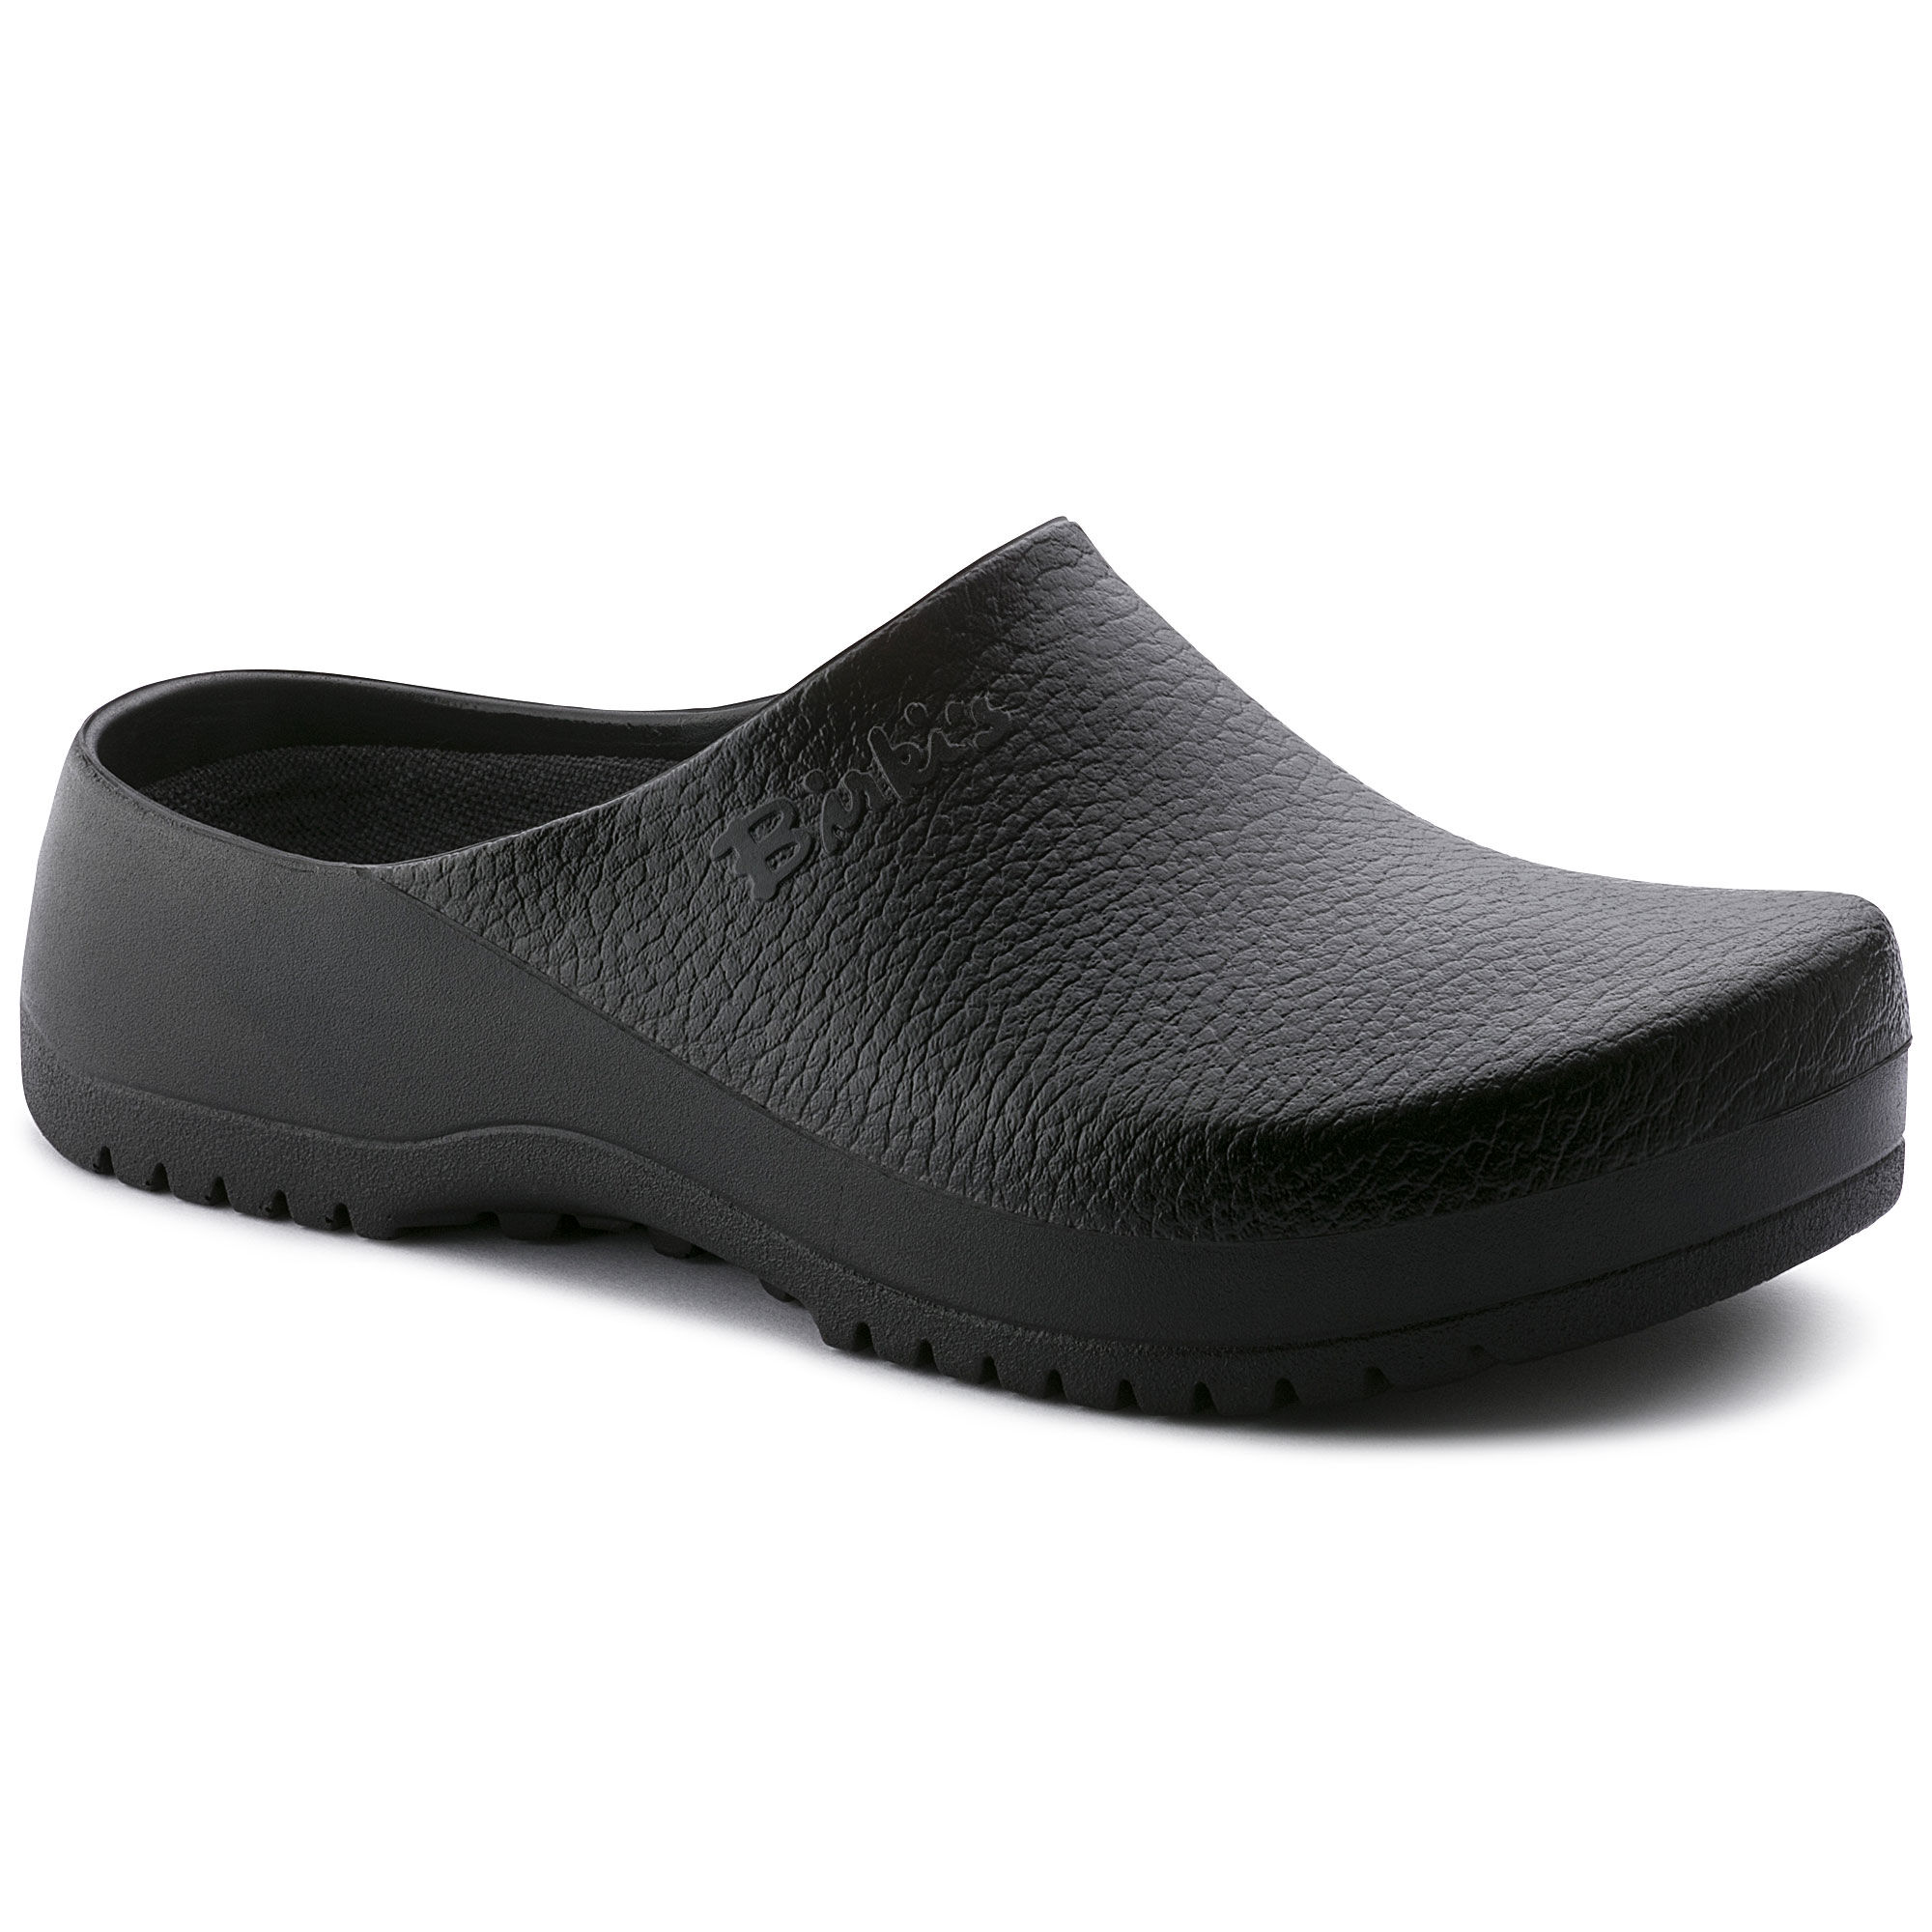 Where To Get Non Slip Shoes Near Me